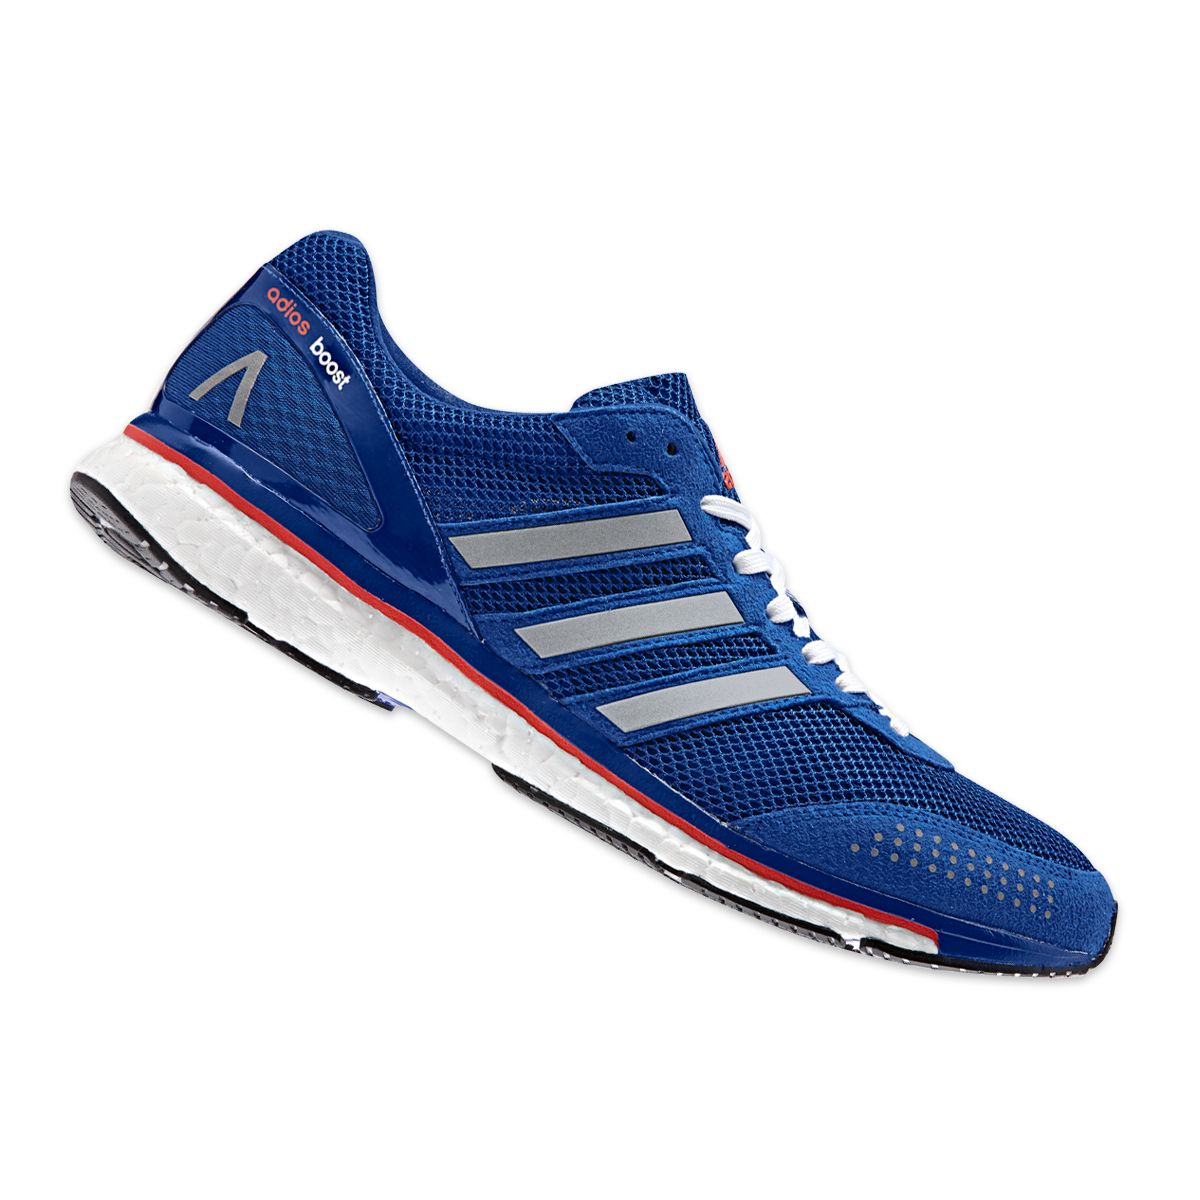 Adizero Adios Boost 2 Mens The Adizero Adios from adidas has delivered each  of the past 4 marathon world records and the Adios Boost 2 carries on that  ... 1db10f8d8